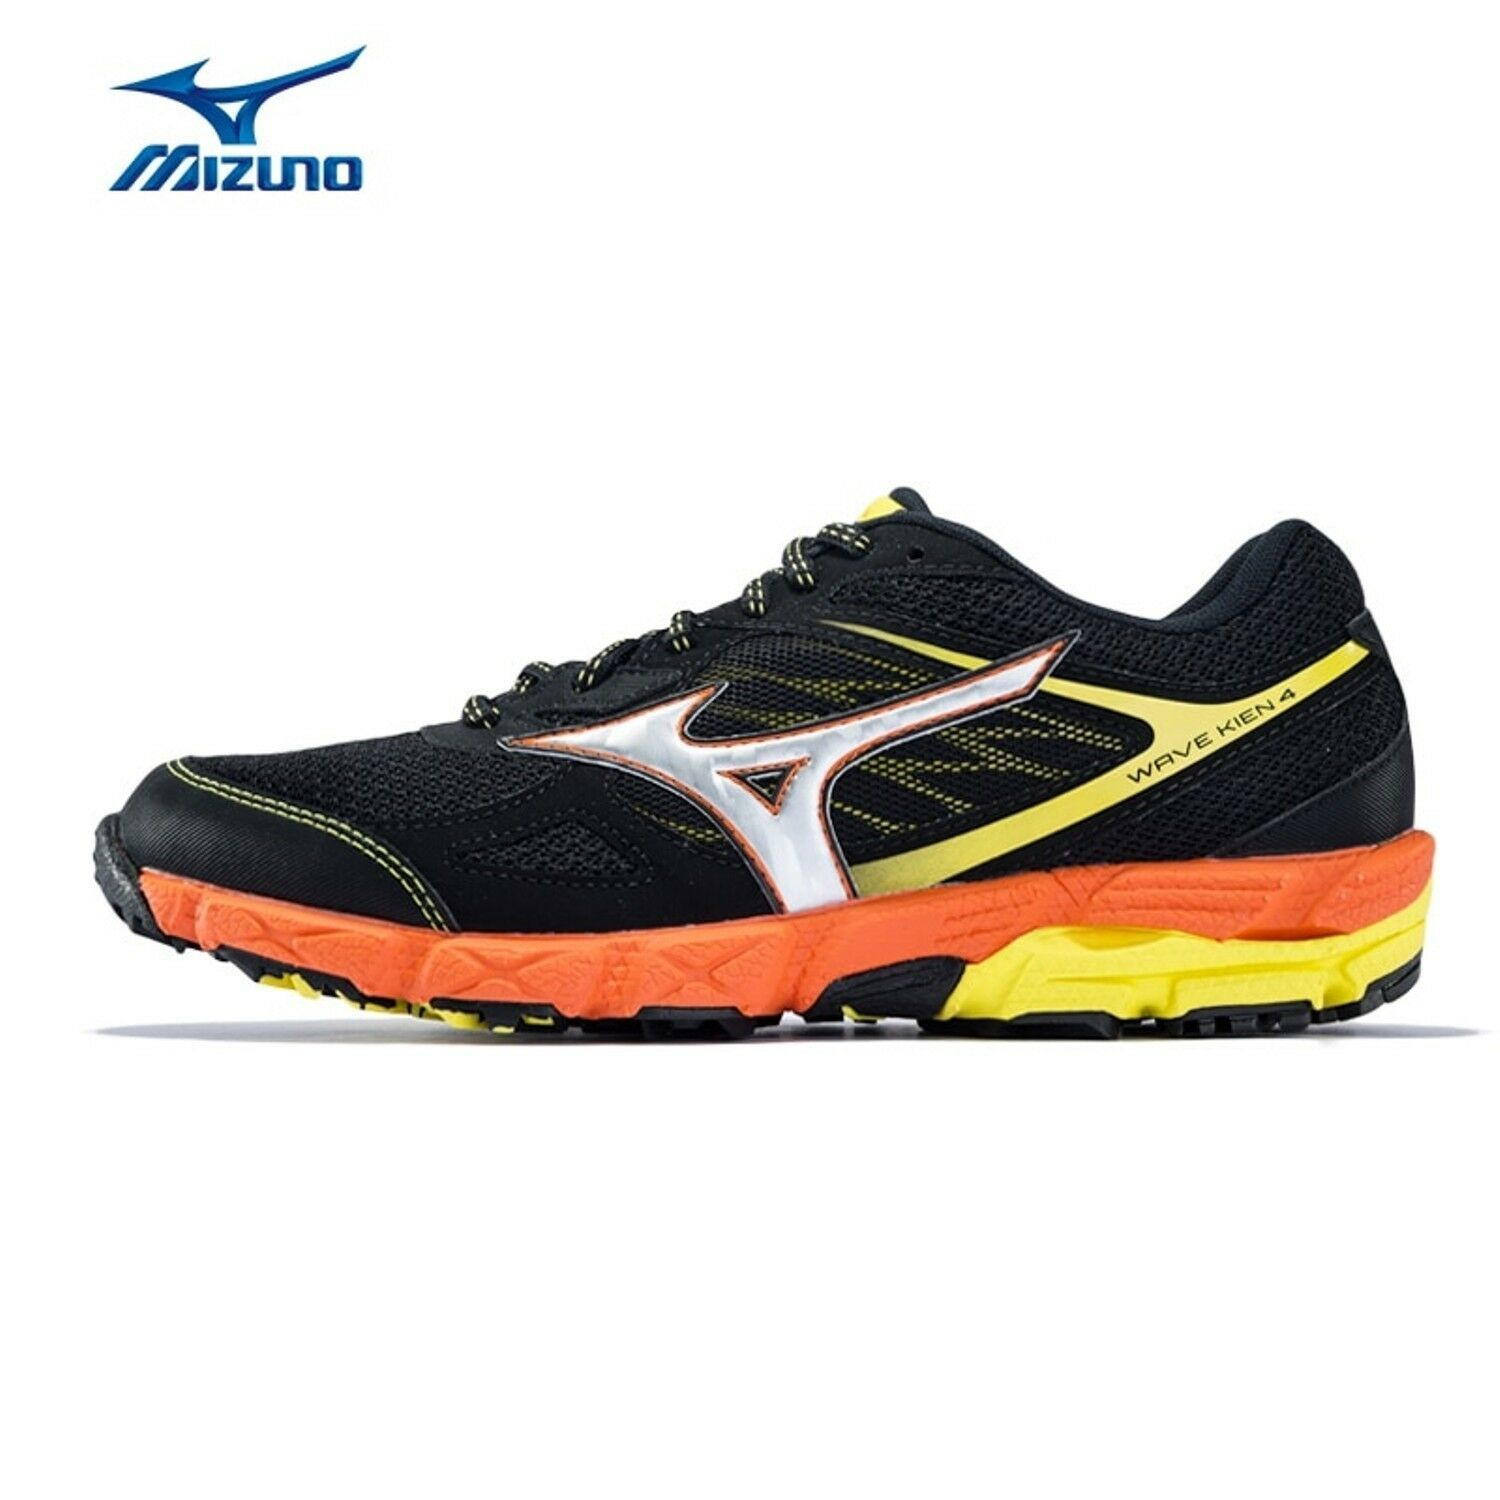 mens mizuno running shoes size 9.5 equivalent hk masculino shoes